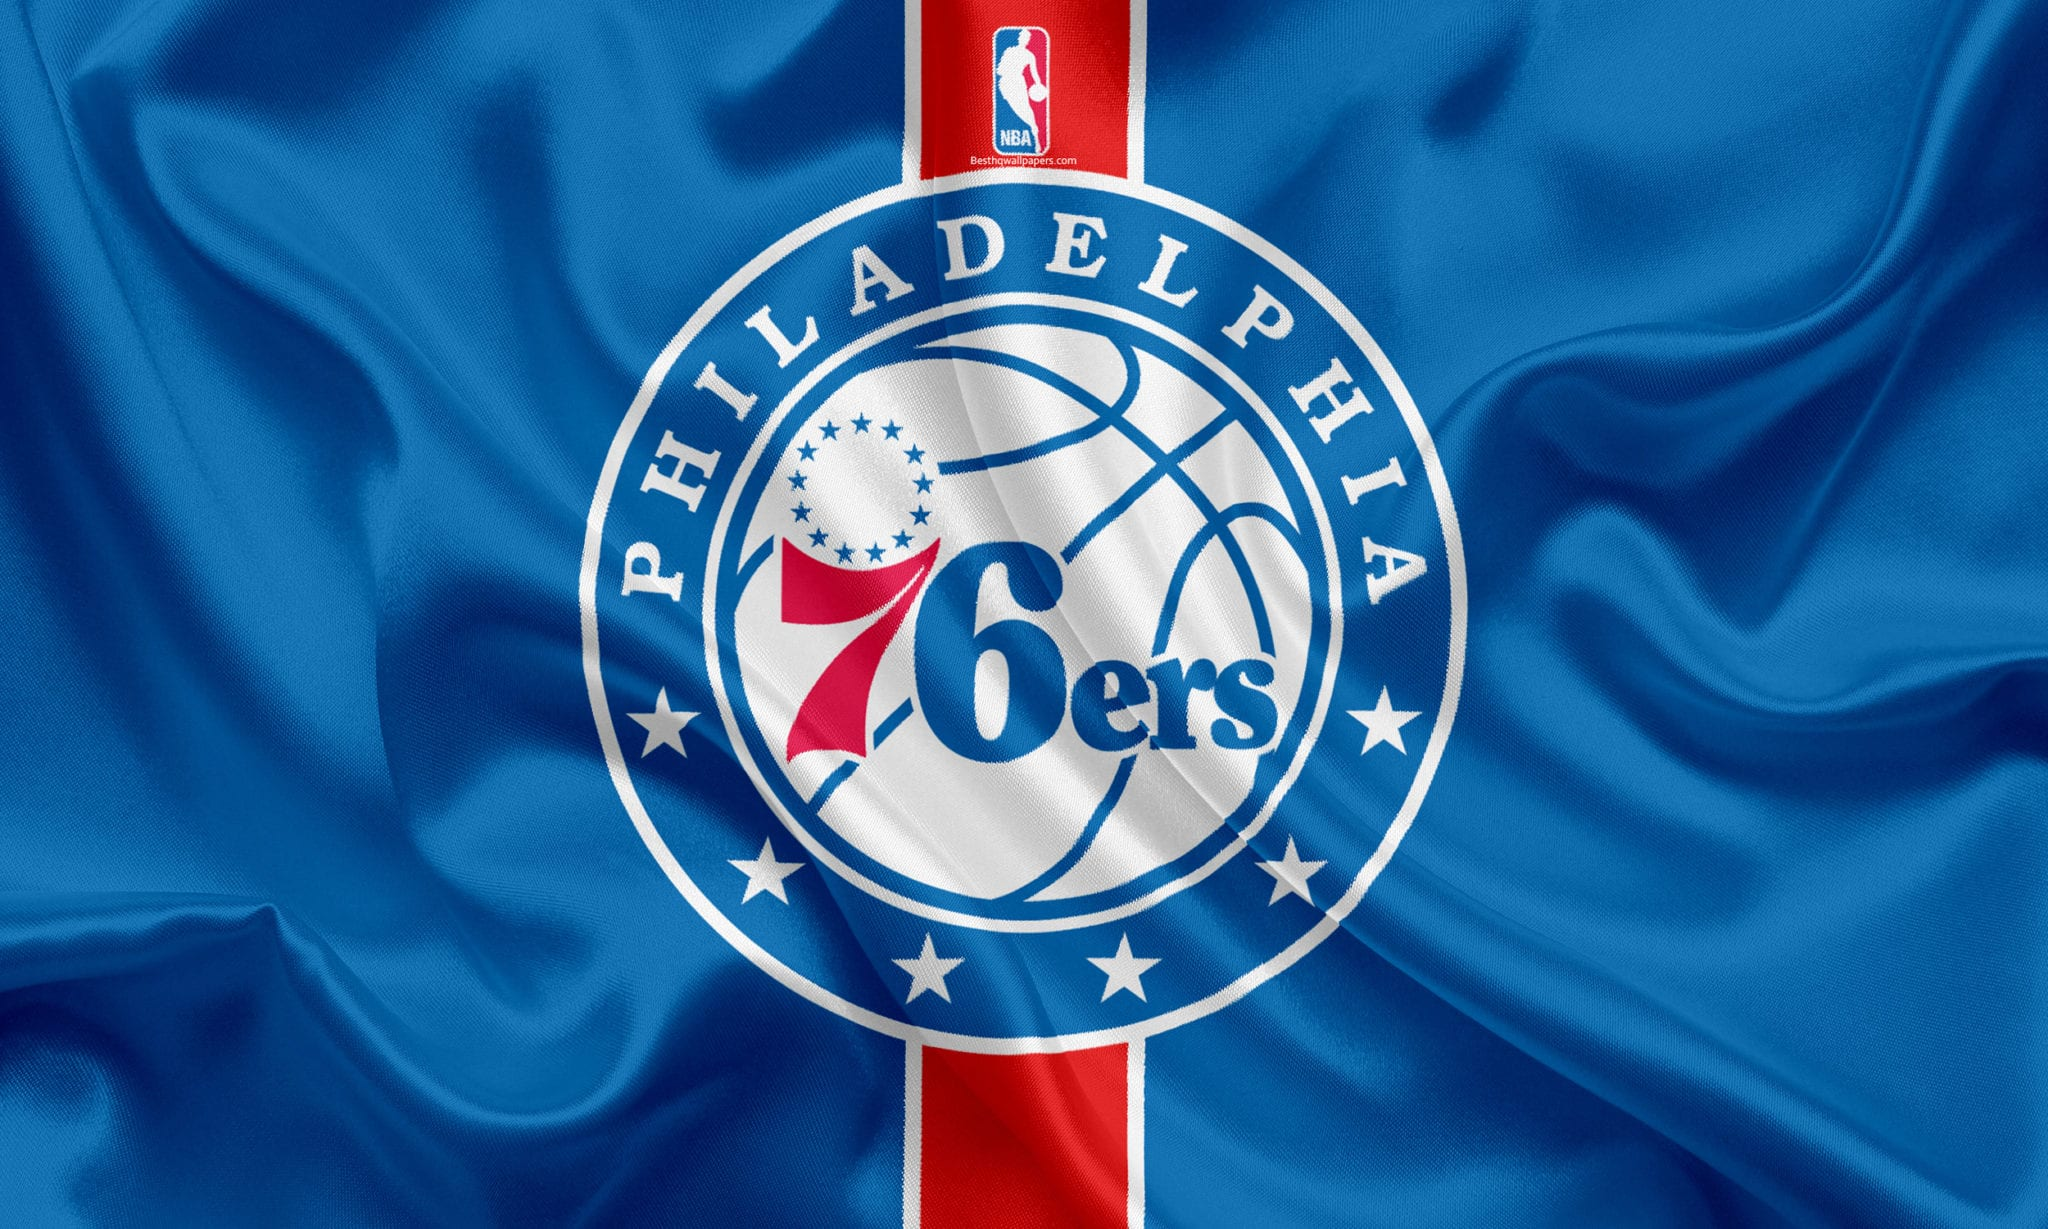 76ers: Facts You Need To Know About The Philadelphia 76ers